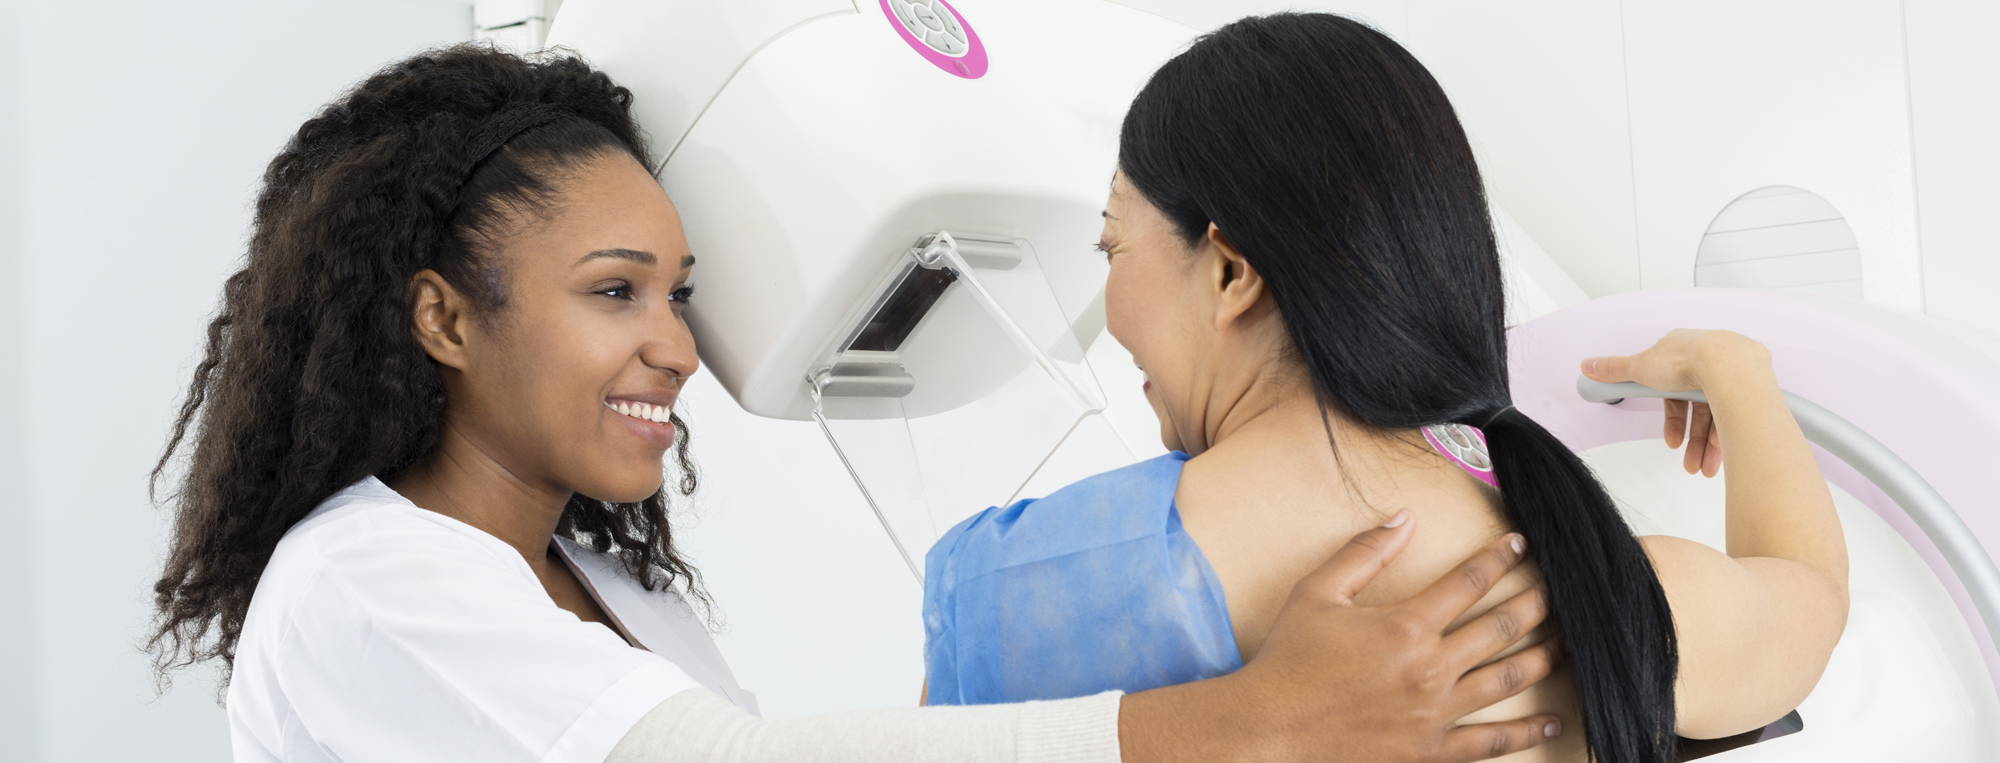 Female doctor giving patient mammogram